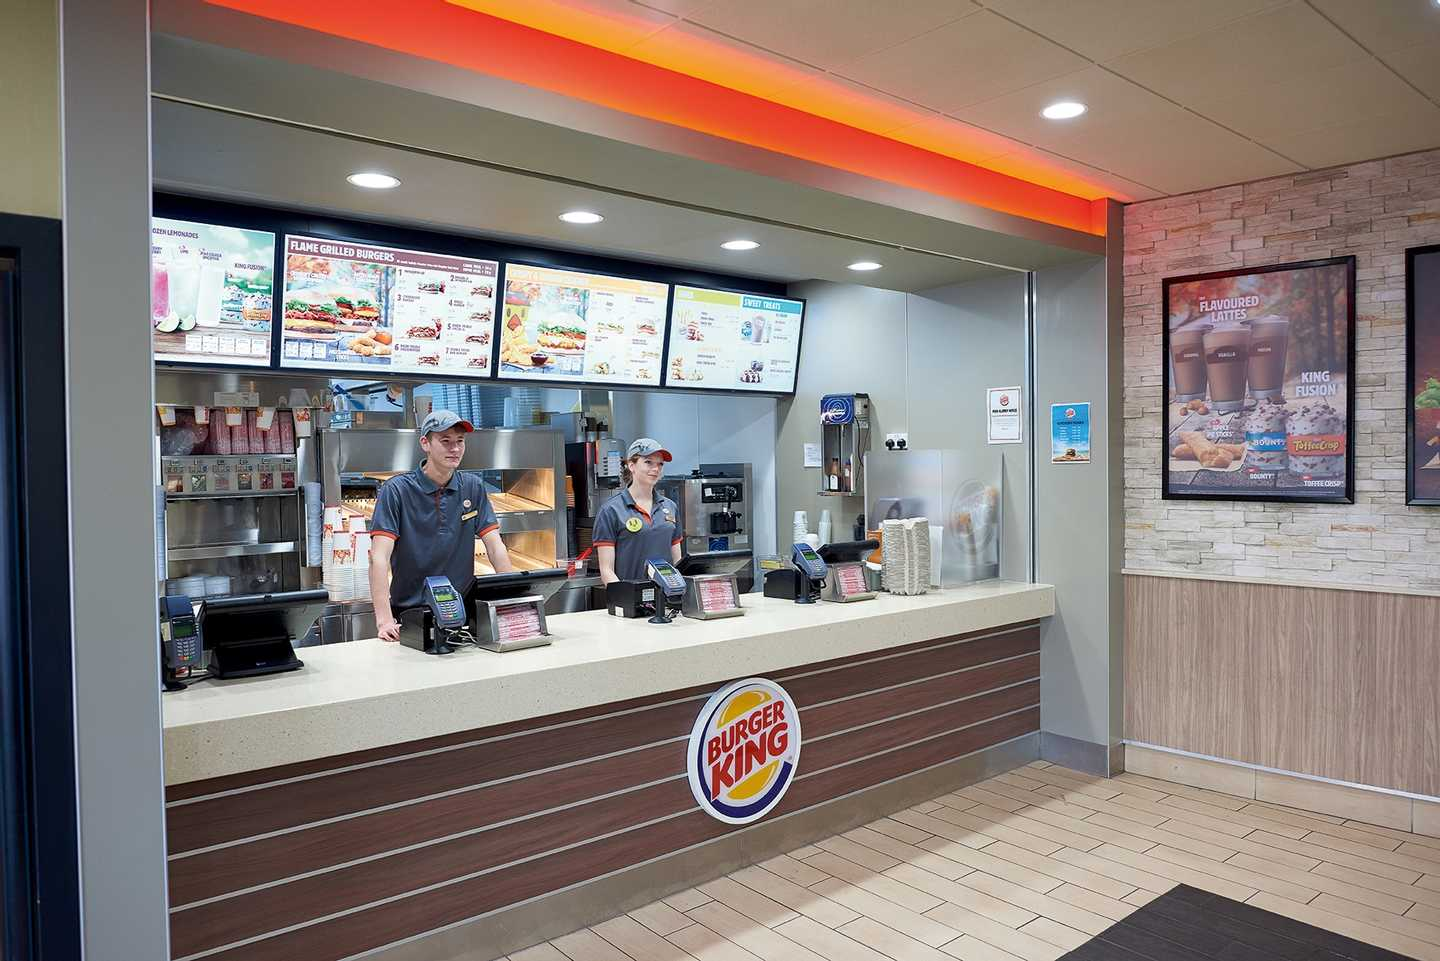 Example image of Burger King®